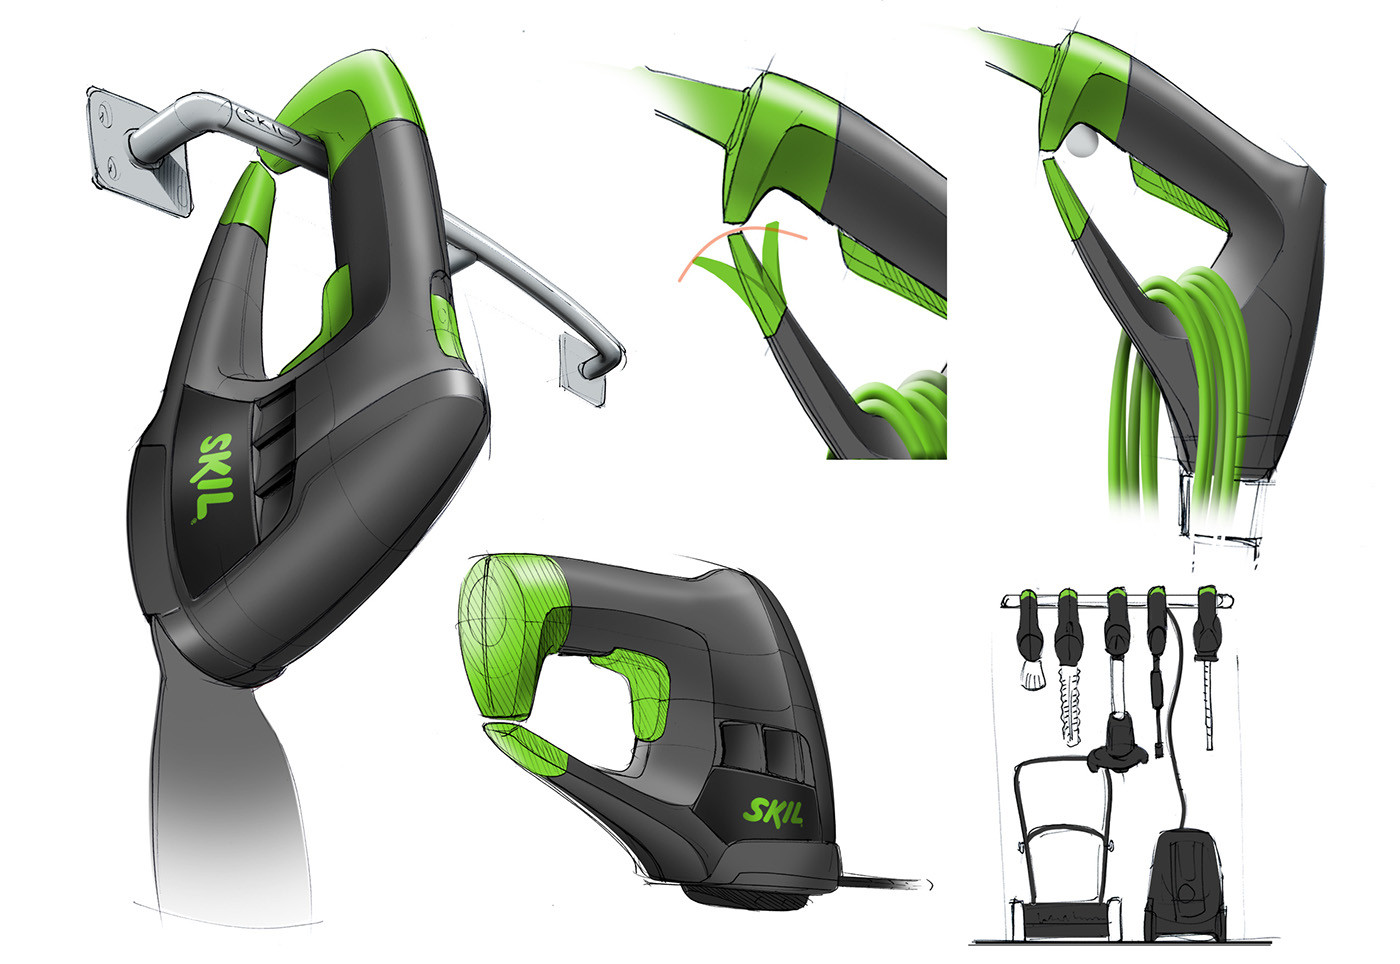 Backyard Design Tools  Electric garden tools for Skil on Behance